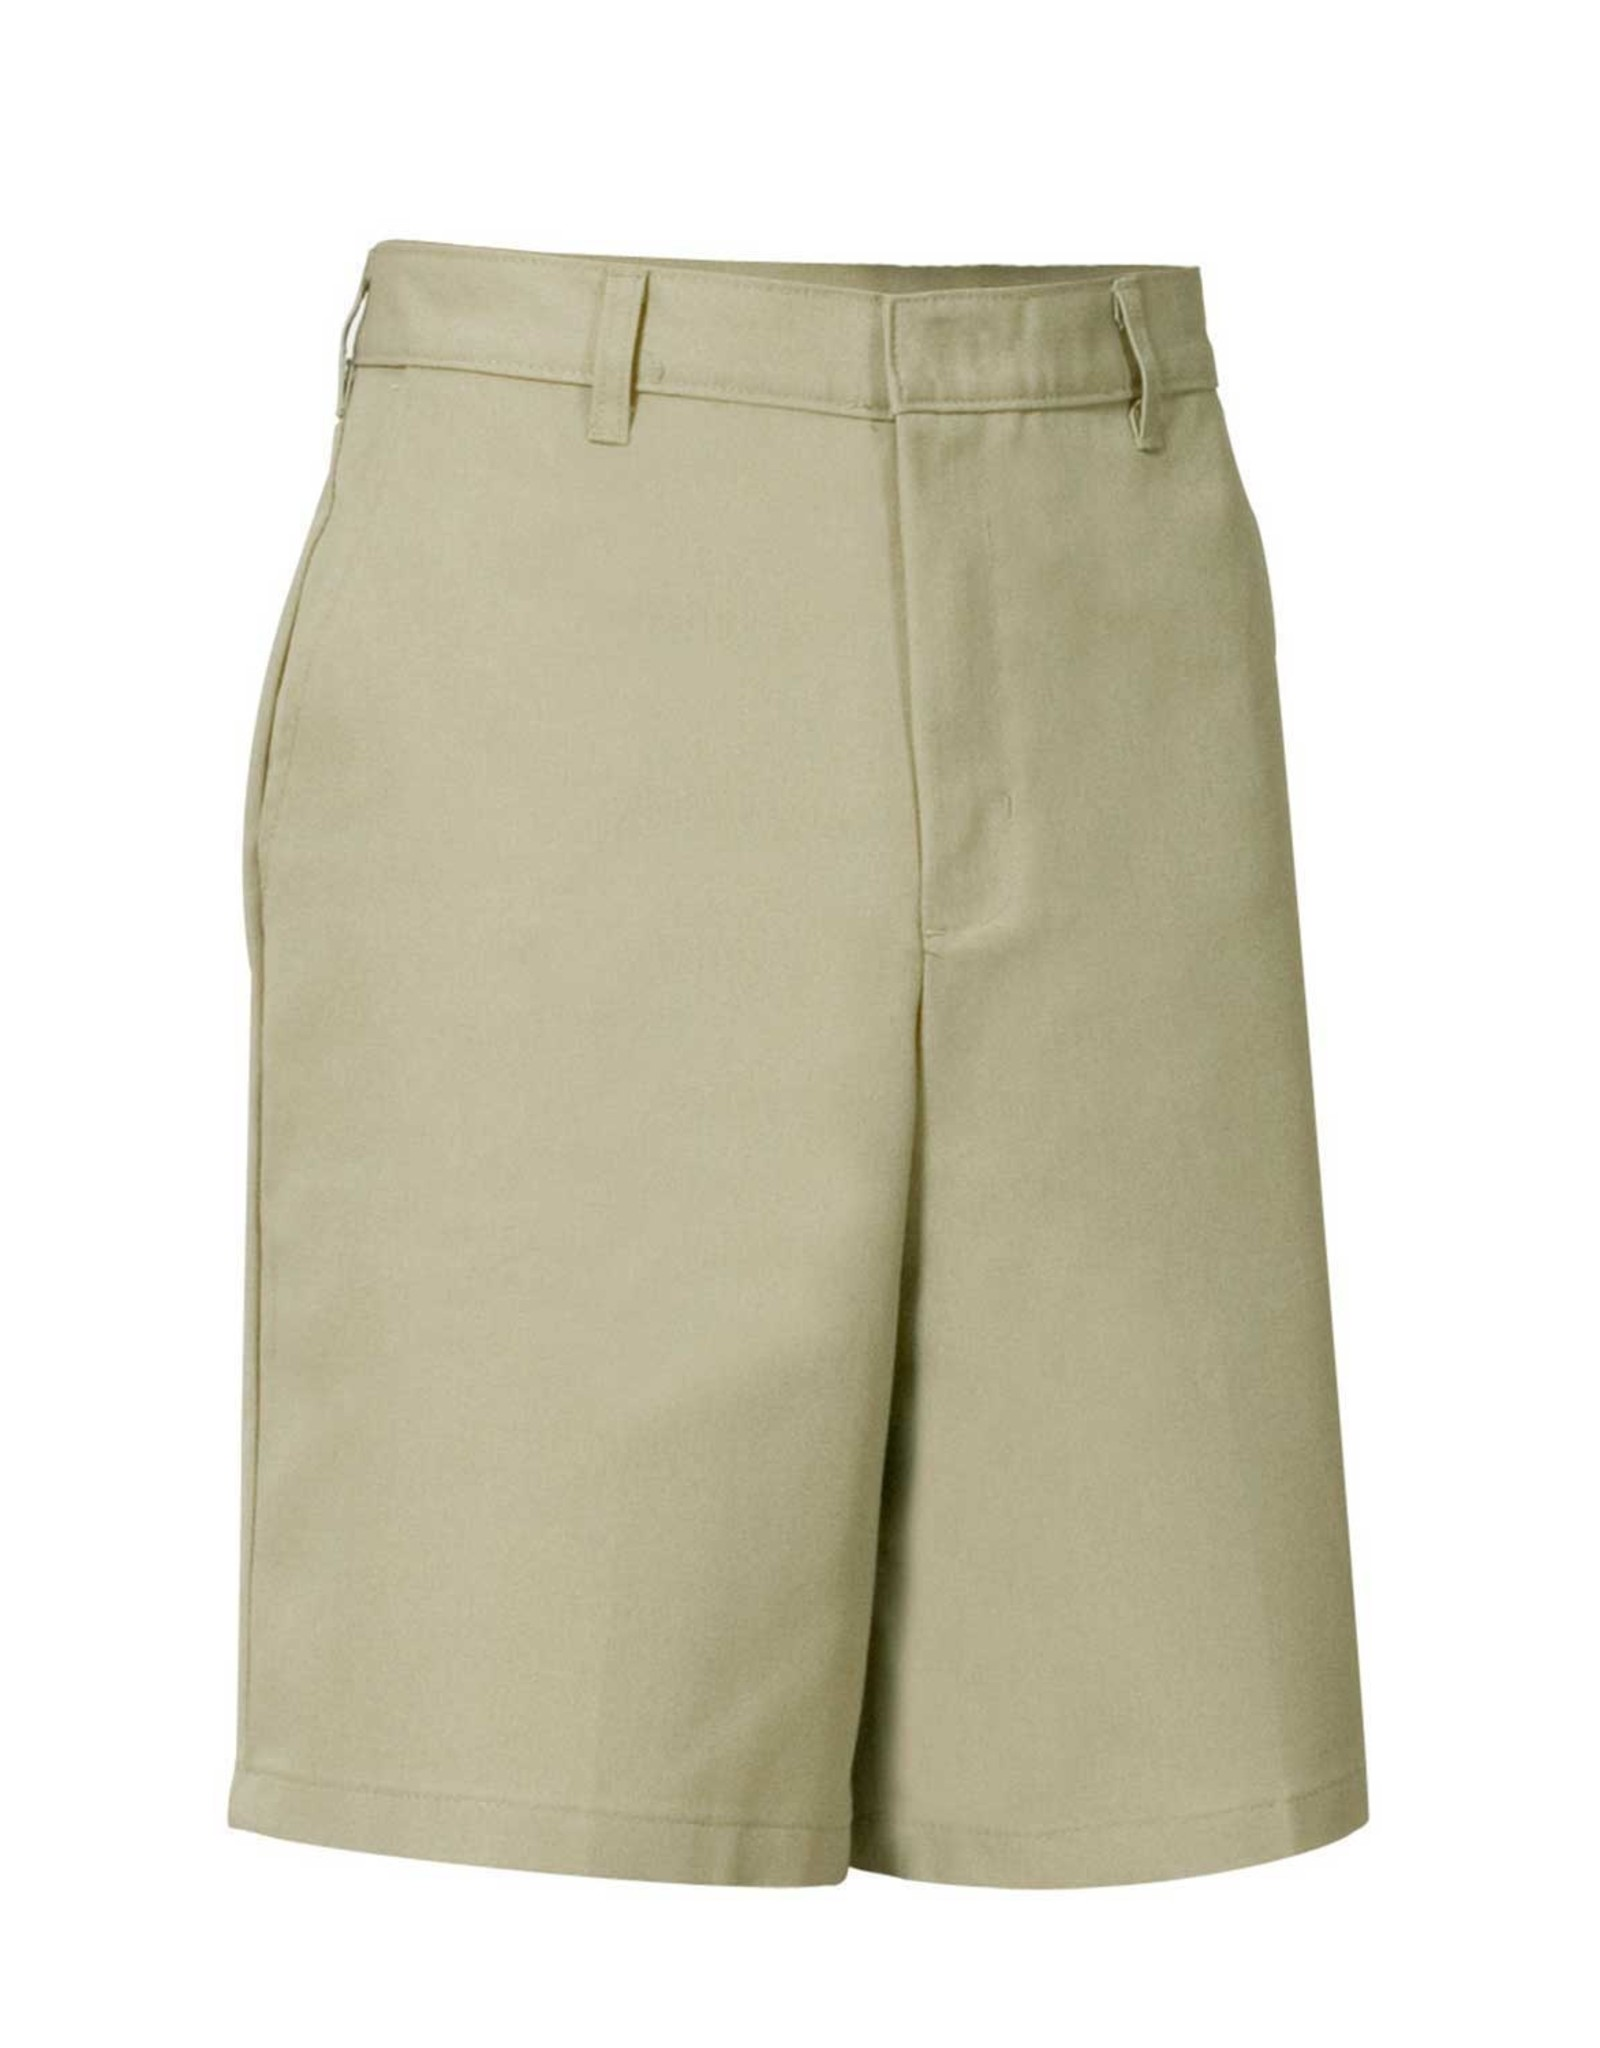 School Apparel Shorts - Mens - Regular